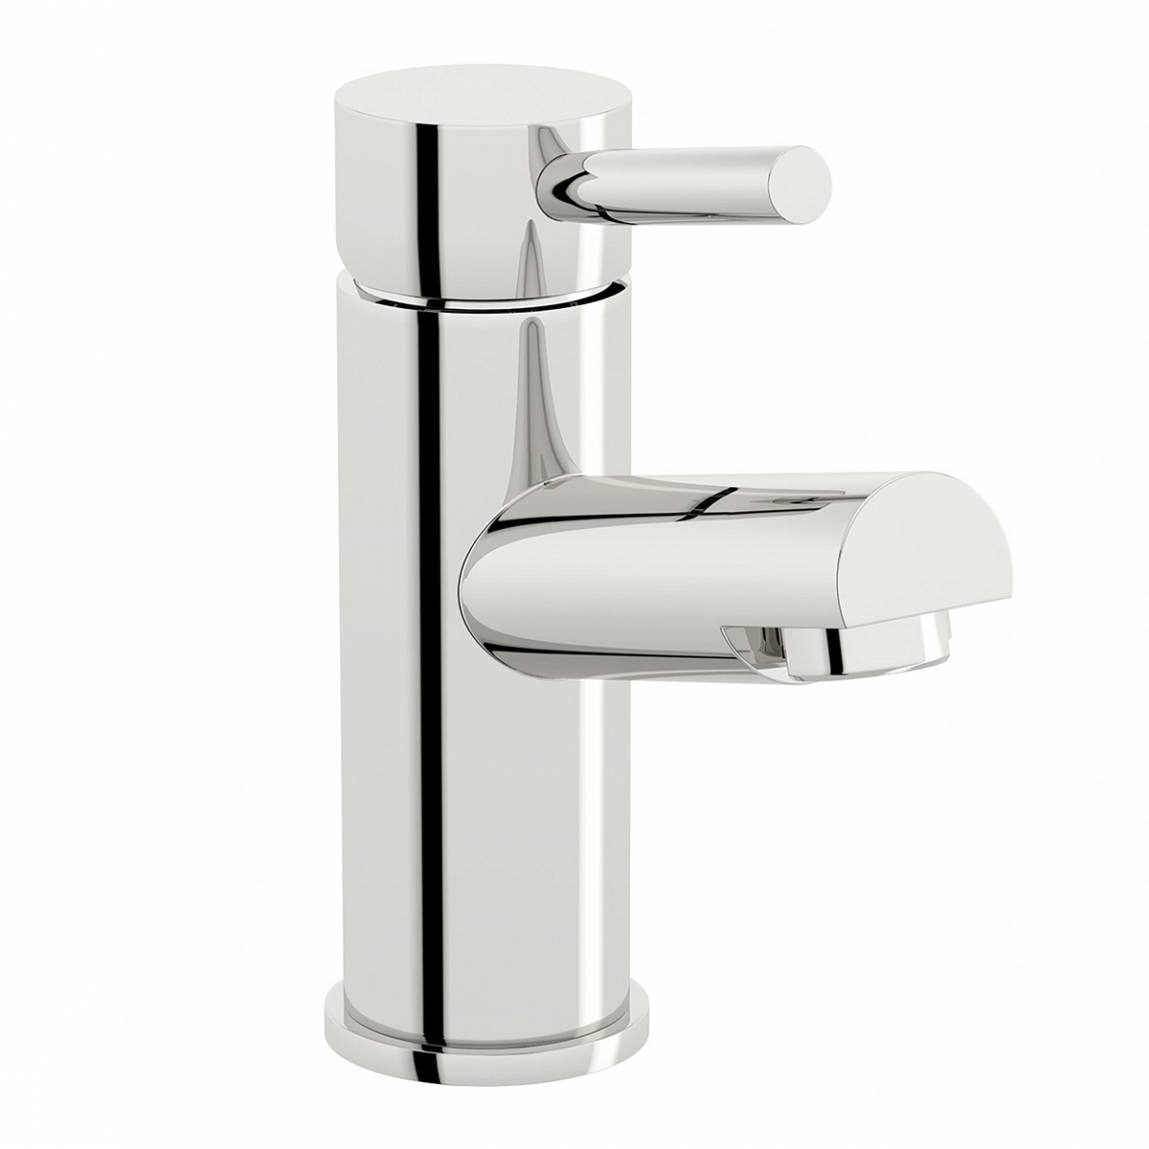 Orchard Wharfe basin mixer tap offer pack